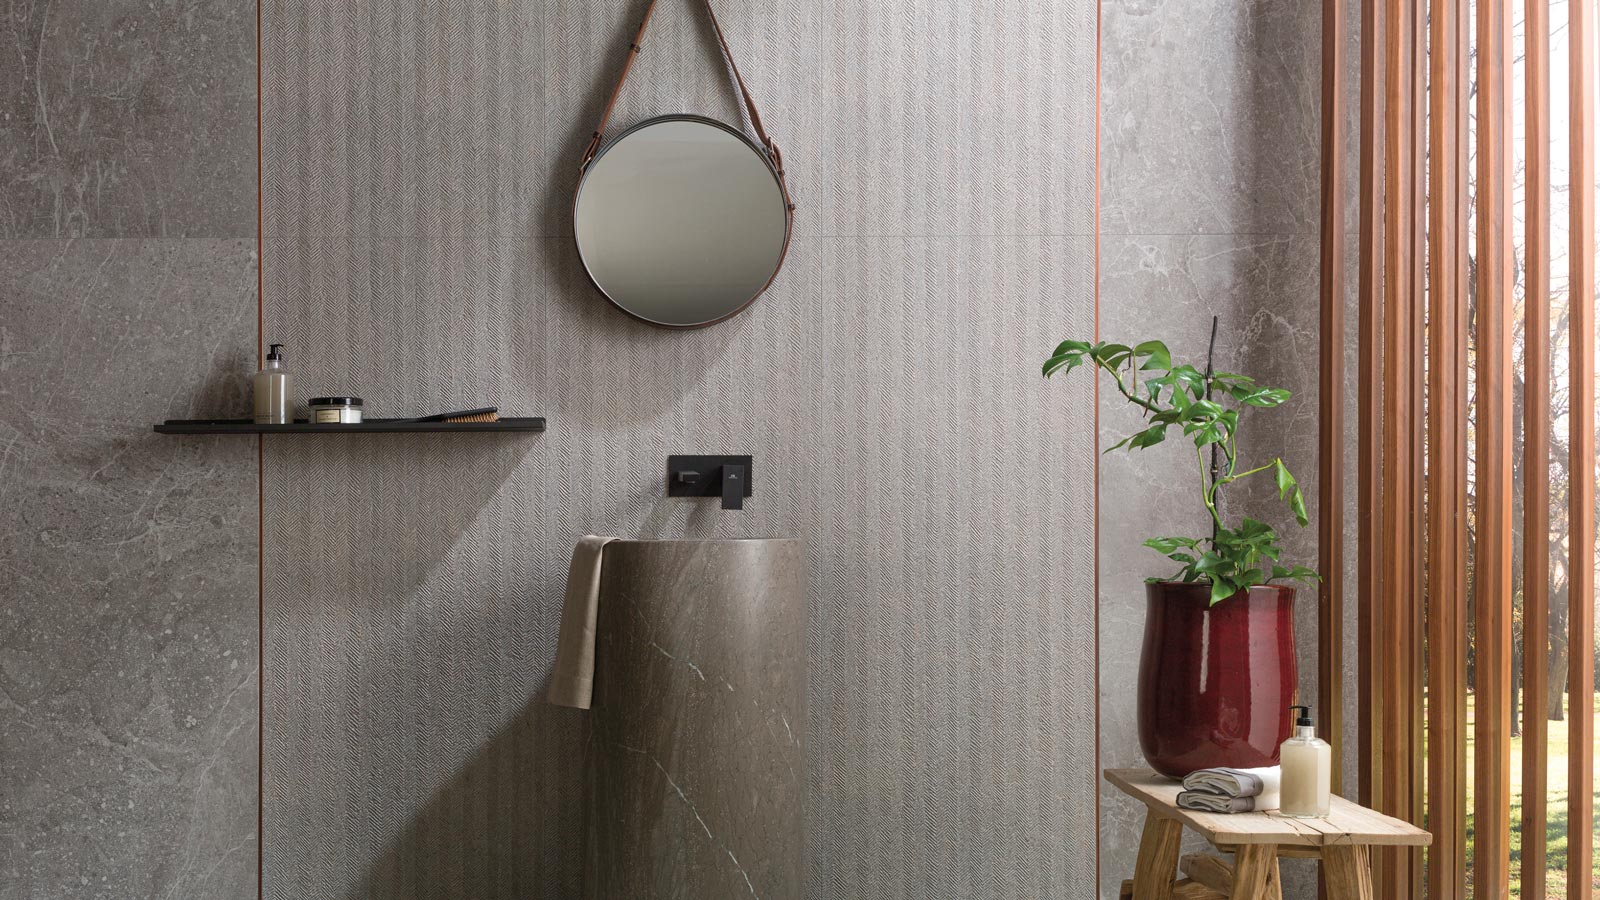 Porcelanosa's most authentic stone-effect ceramic tile collections